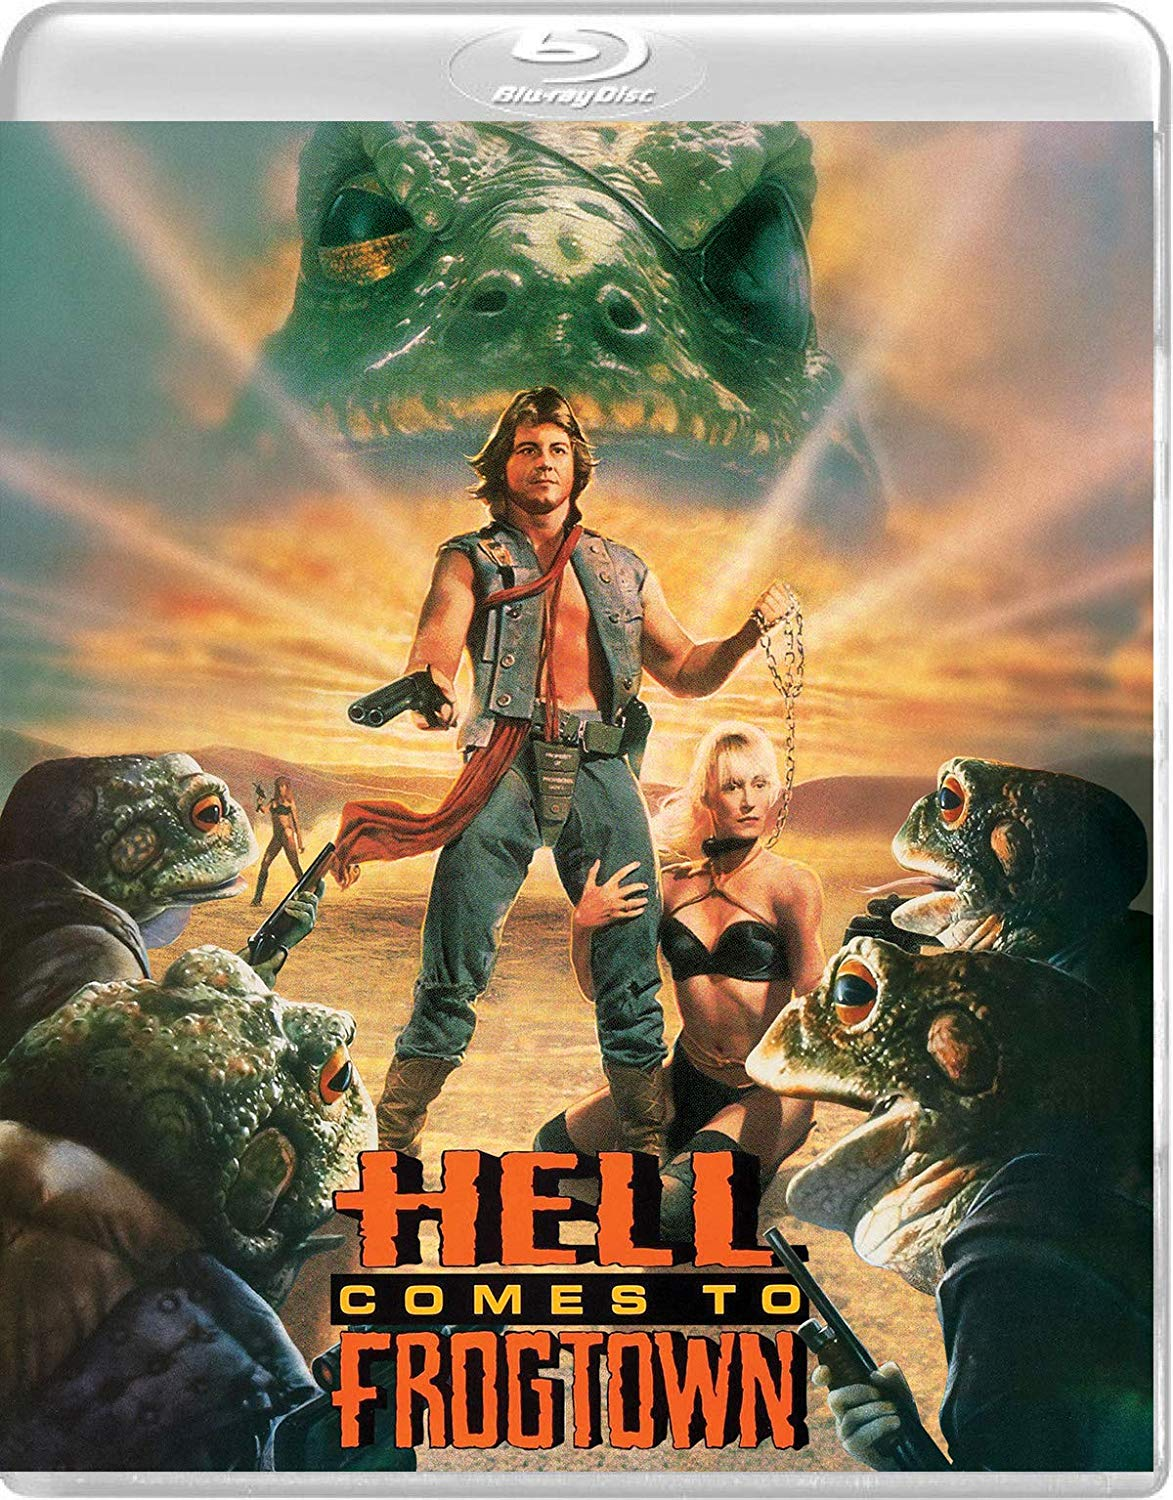 hell comes to frogtown blu-ray